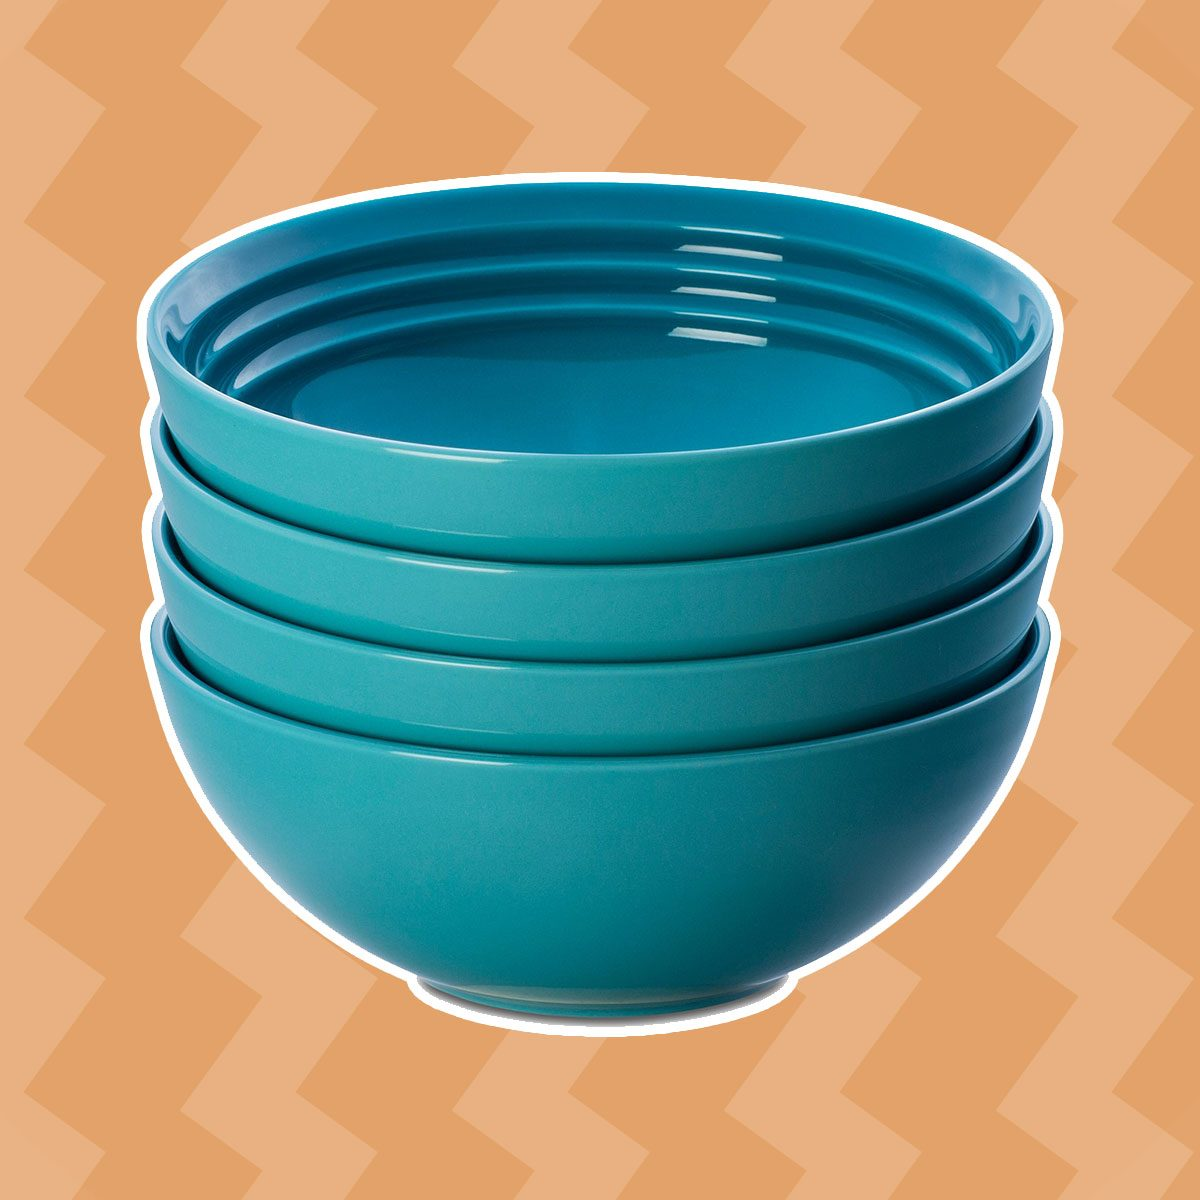 Bright and Colorful Soup Bowls